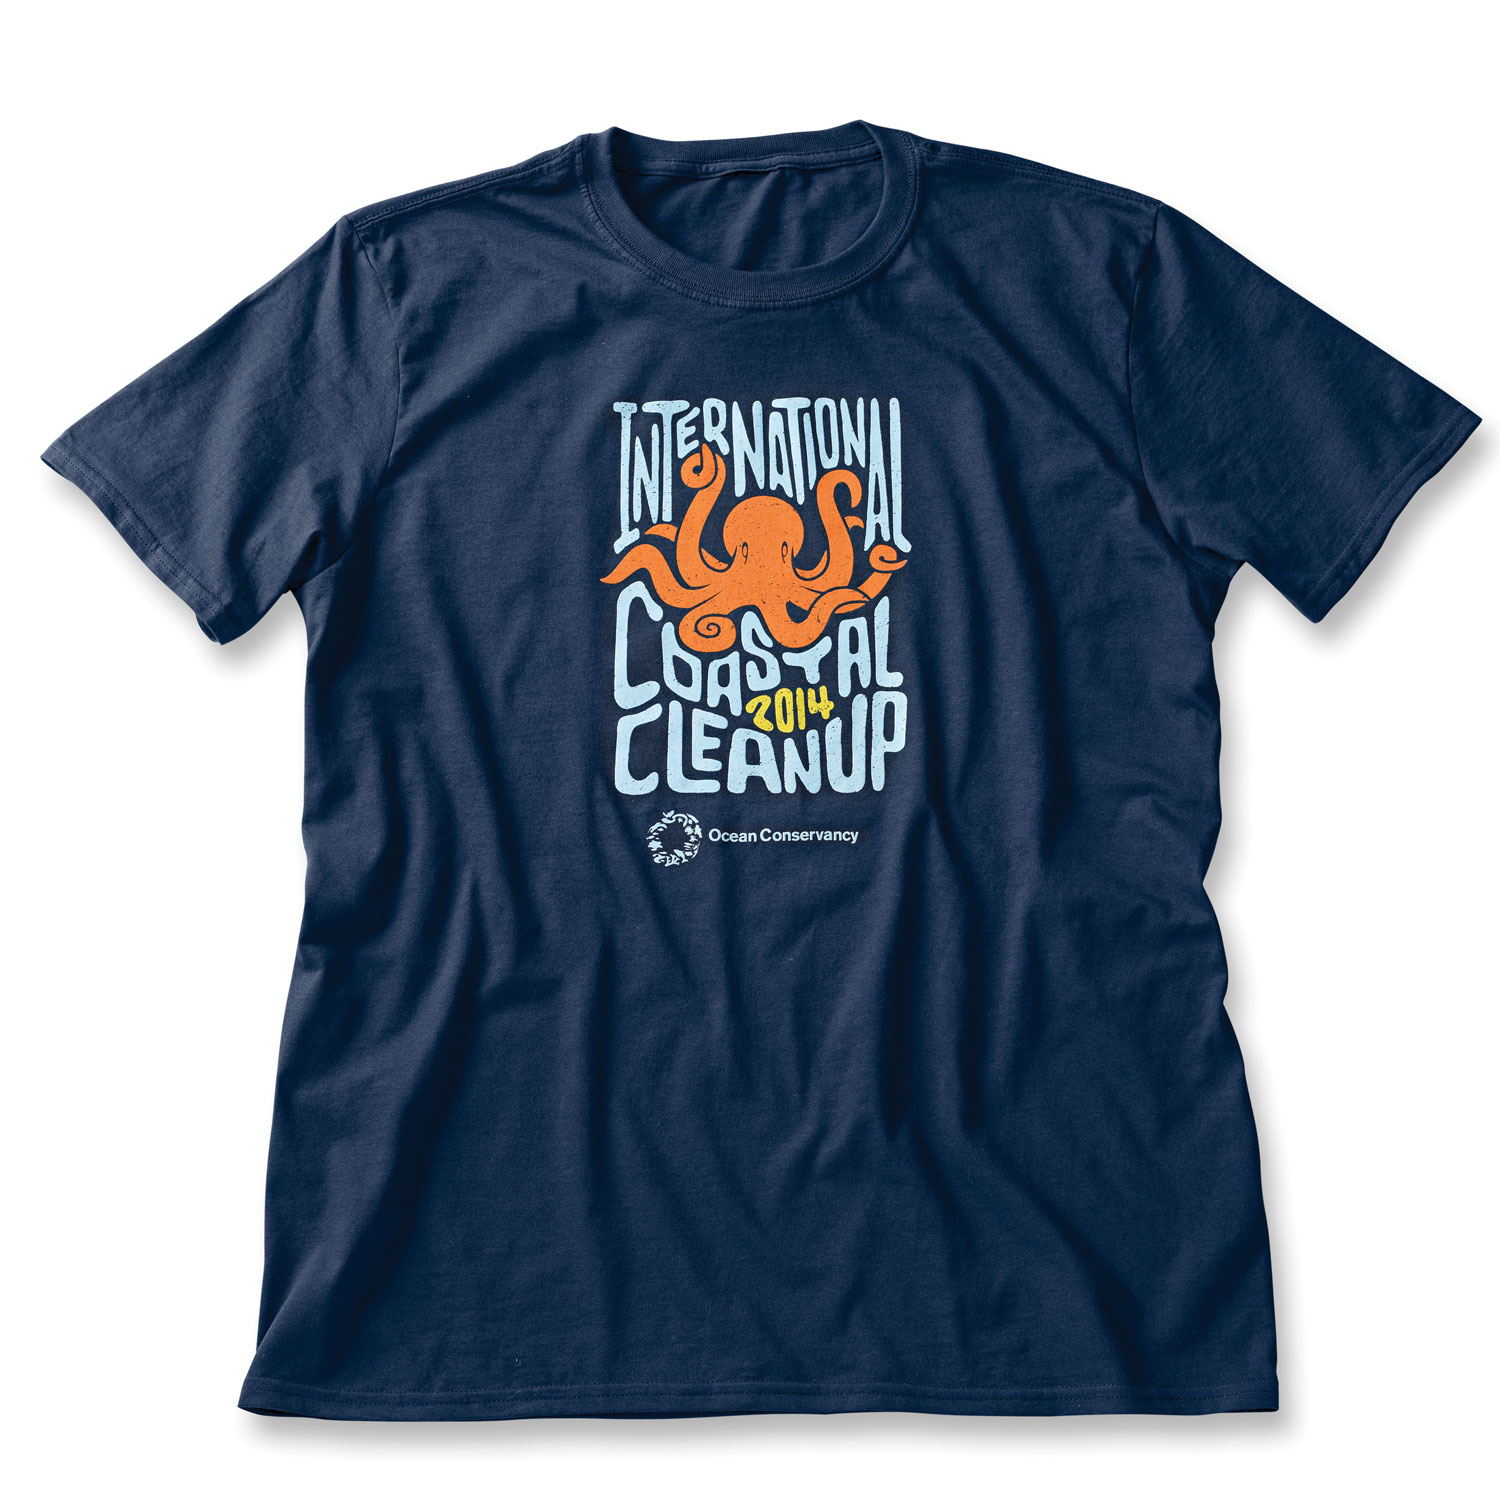 International Coastal Cleanup T-shirt